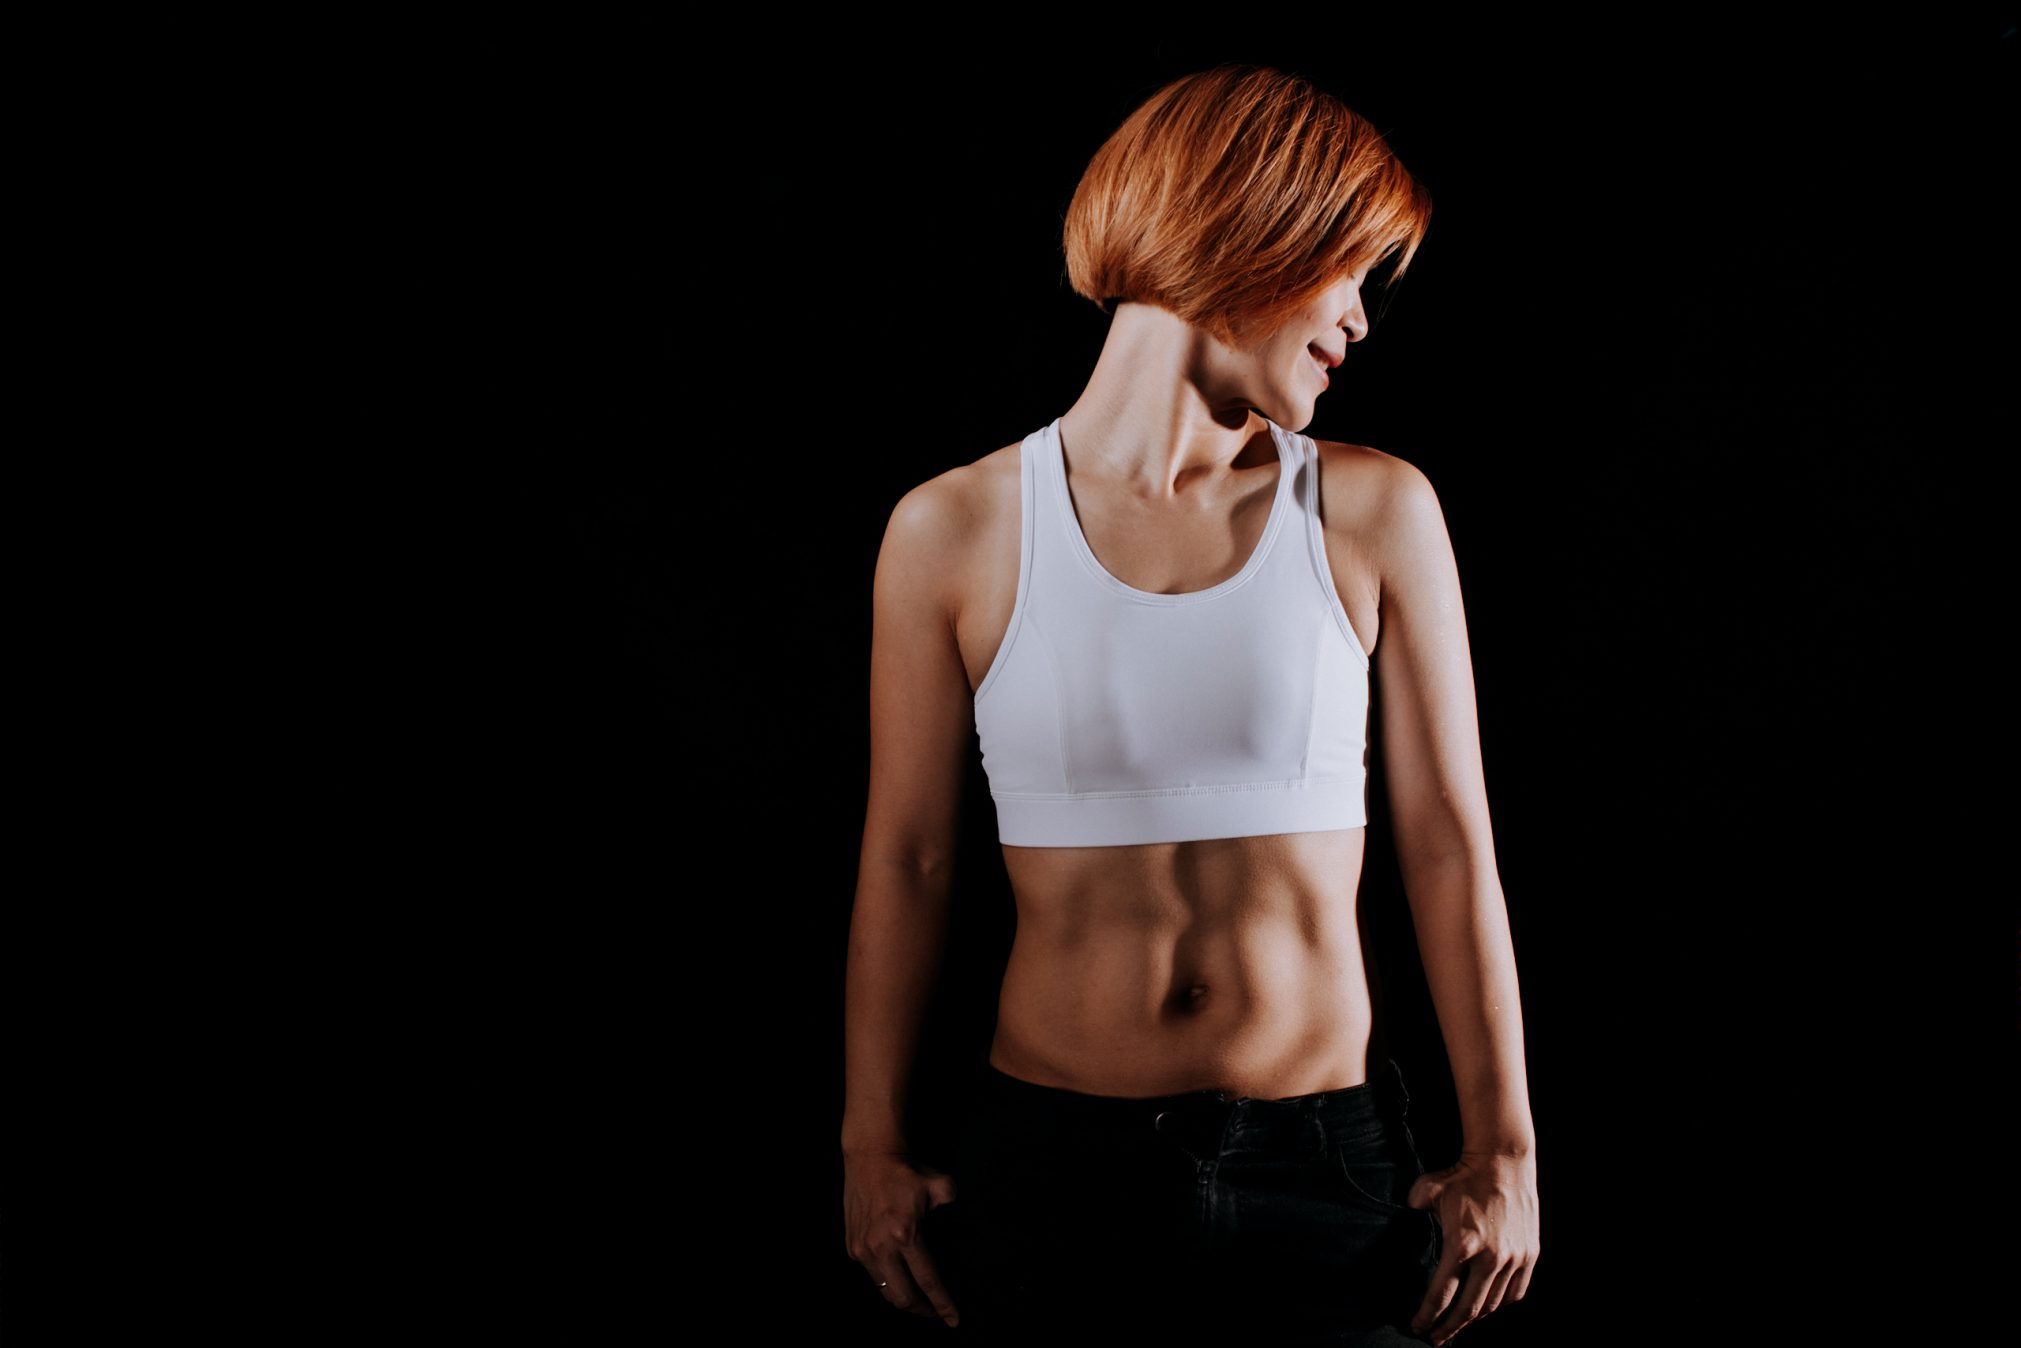 Fitness Portrait Photo Fitmom Woman Lady Studio Session Cliff Choong Photography